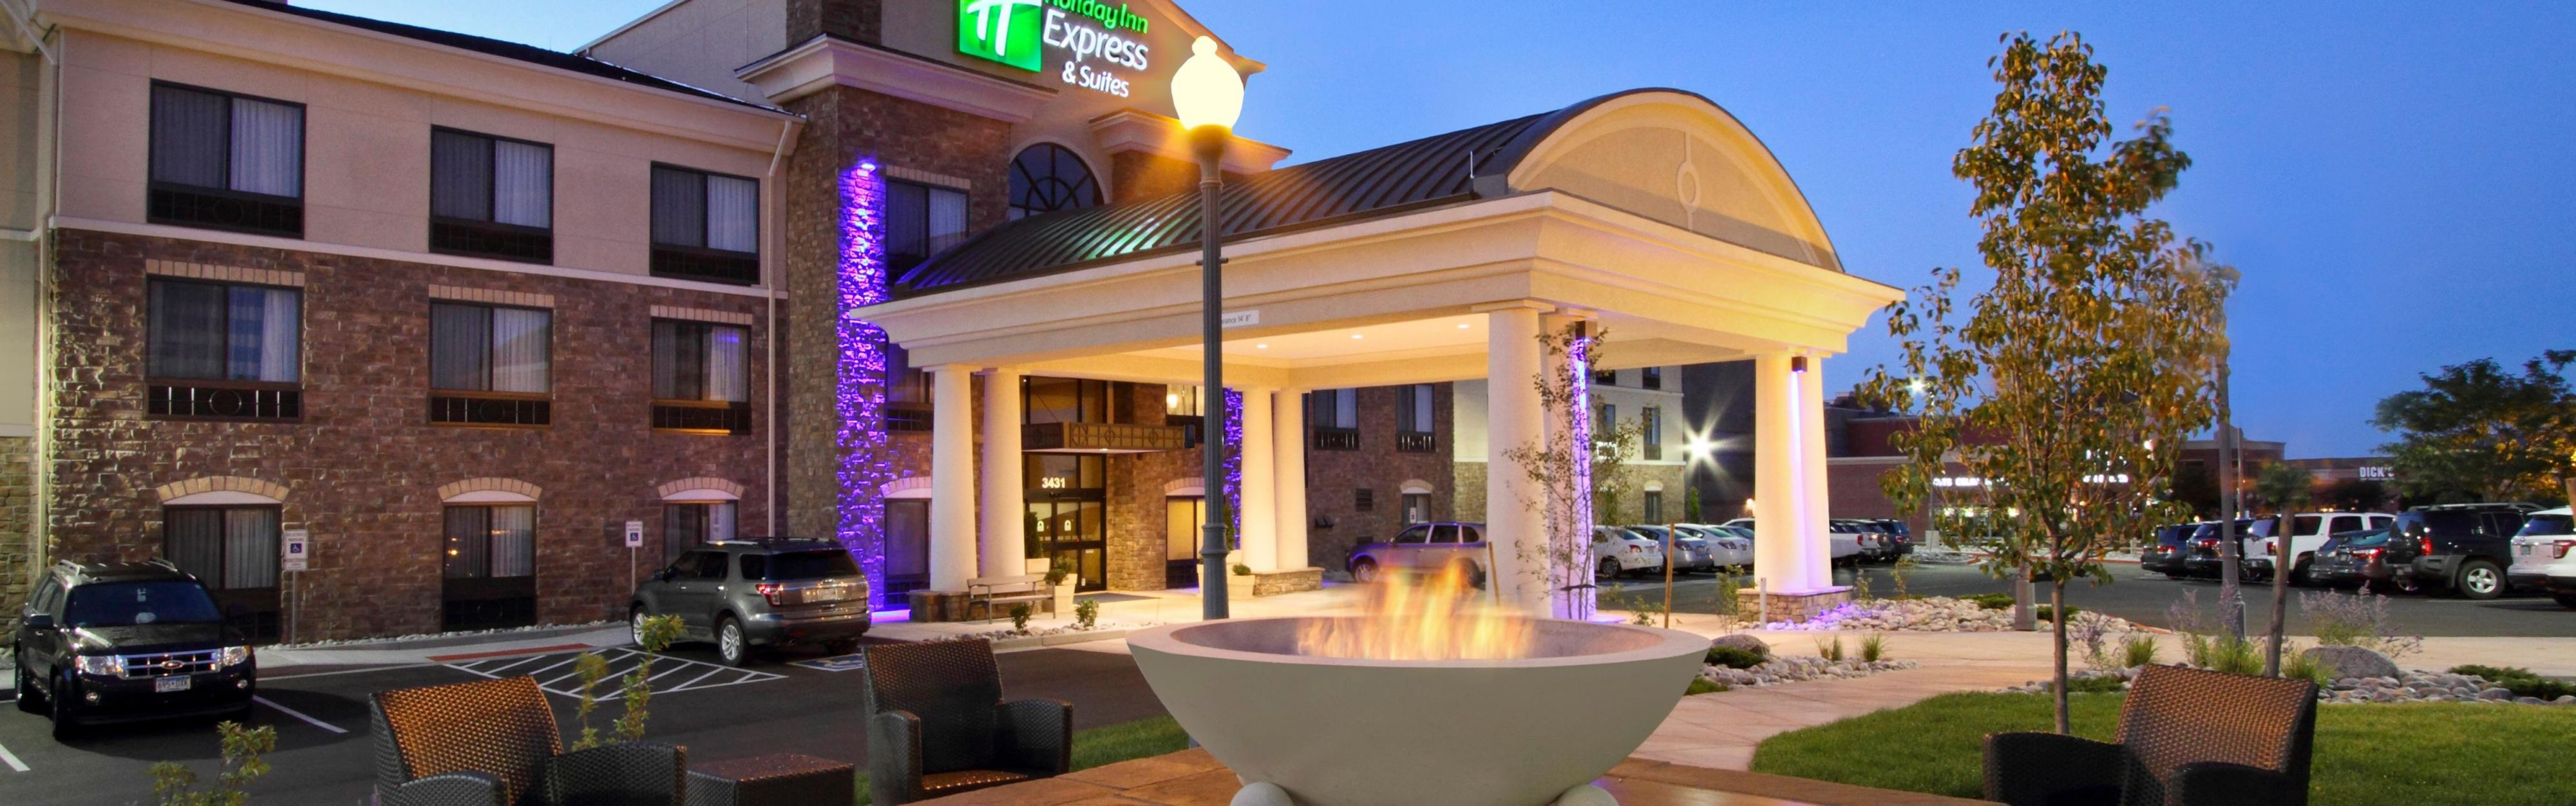 Holiday Inn Express Amp Suites Colorado Springs First Amp Main